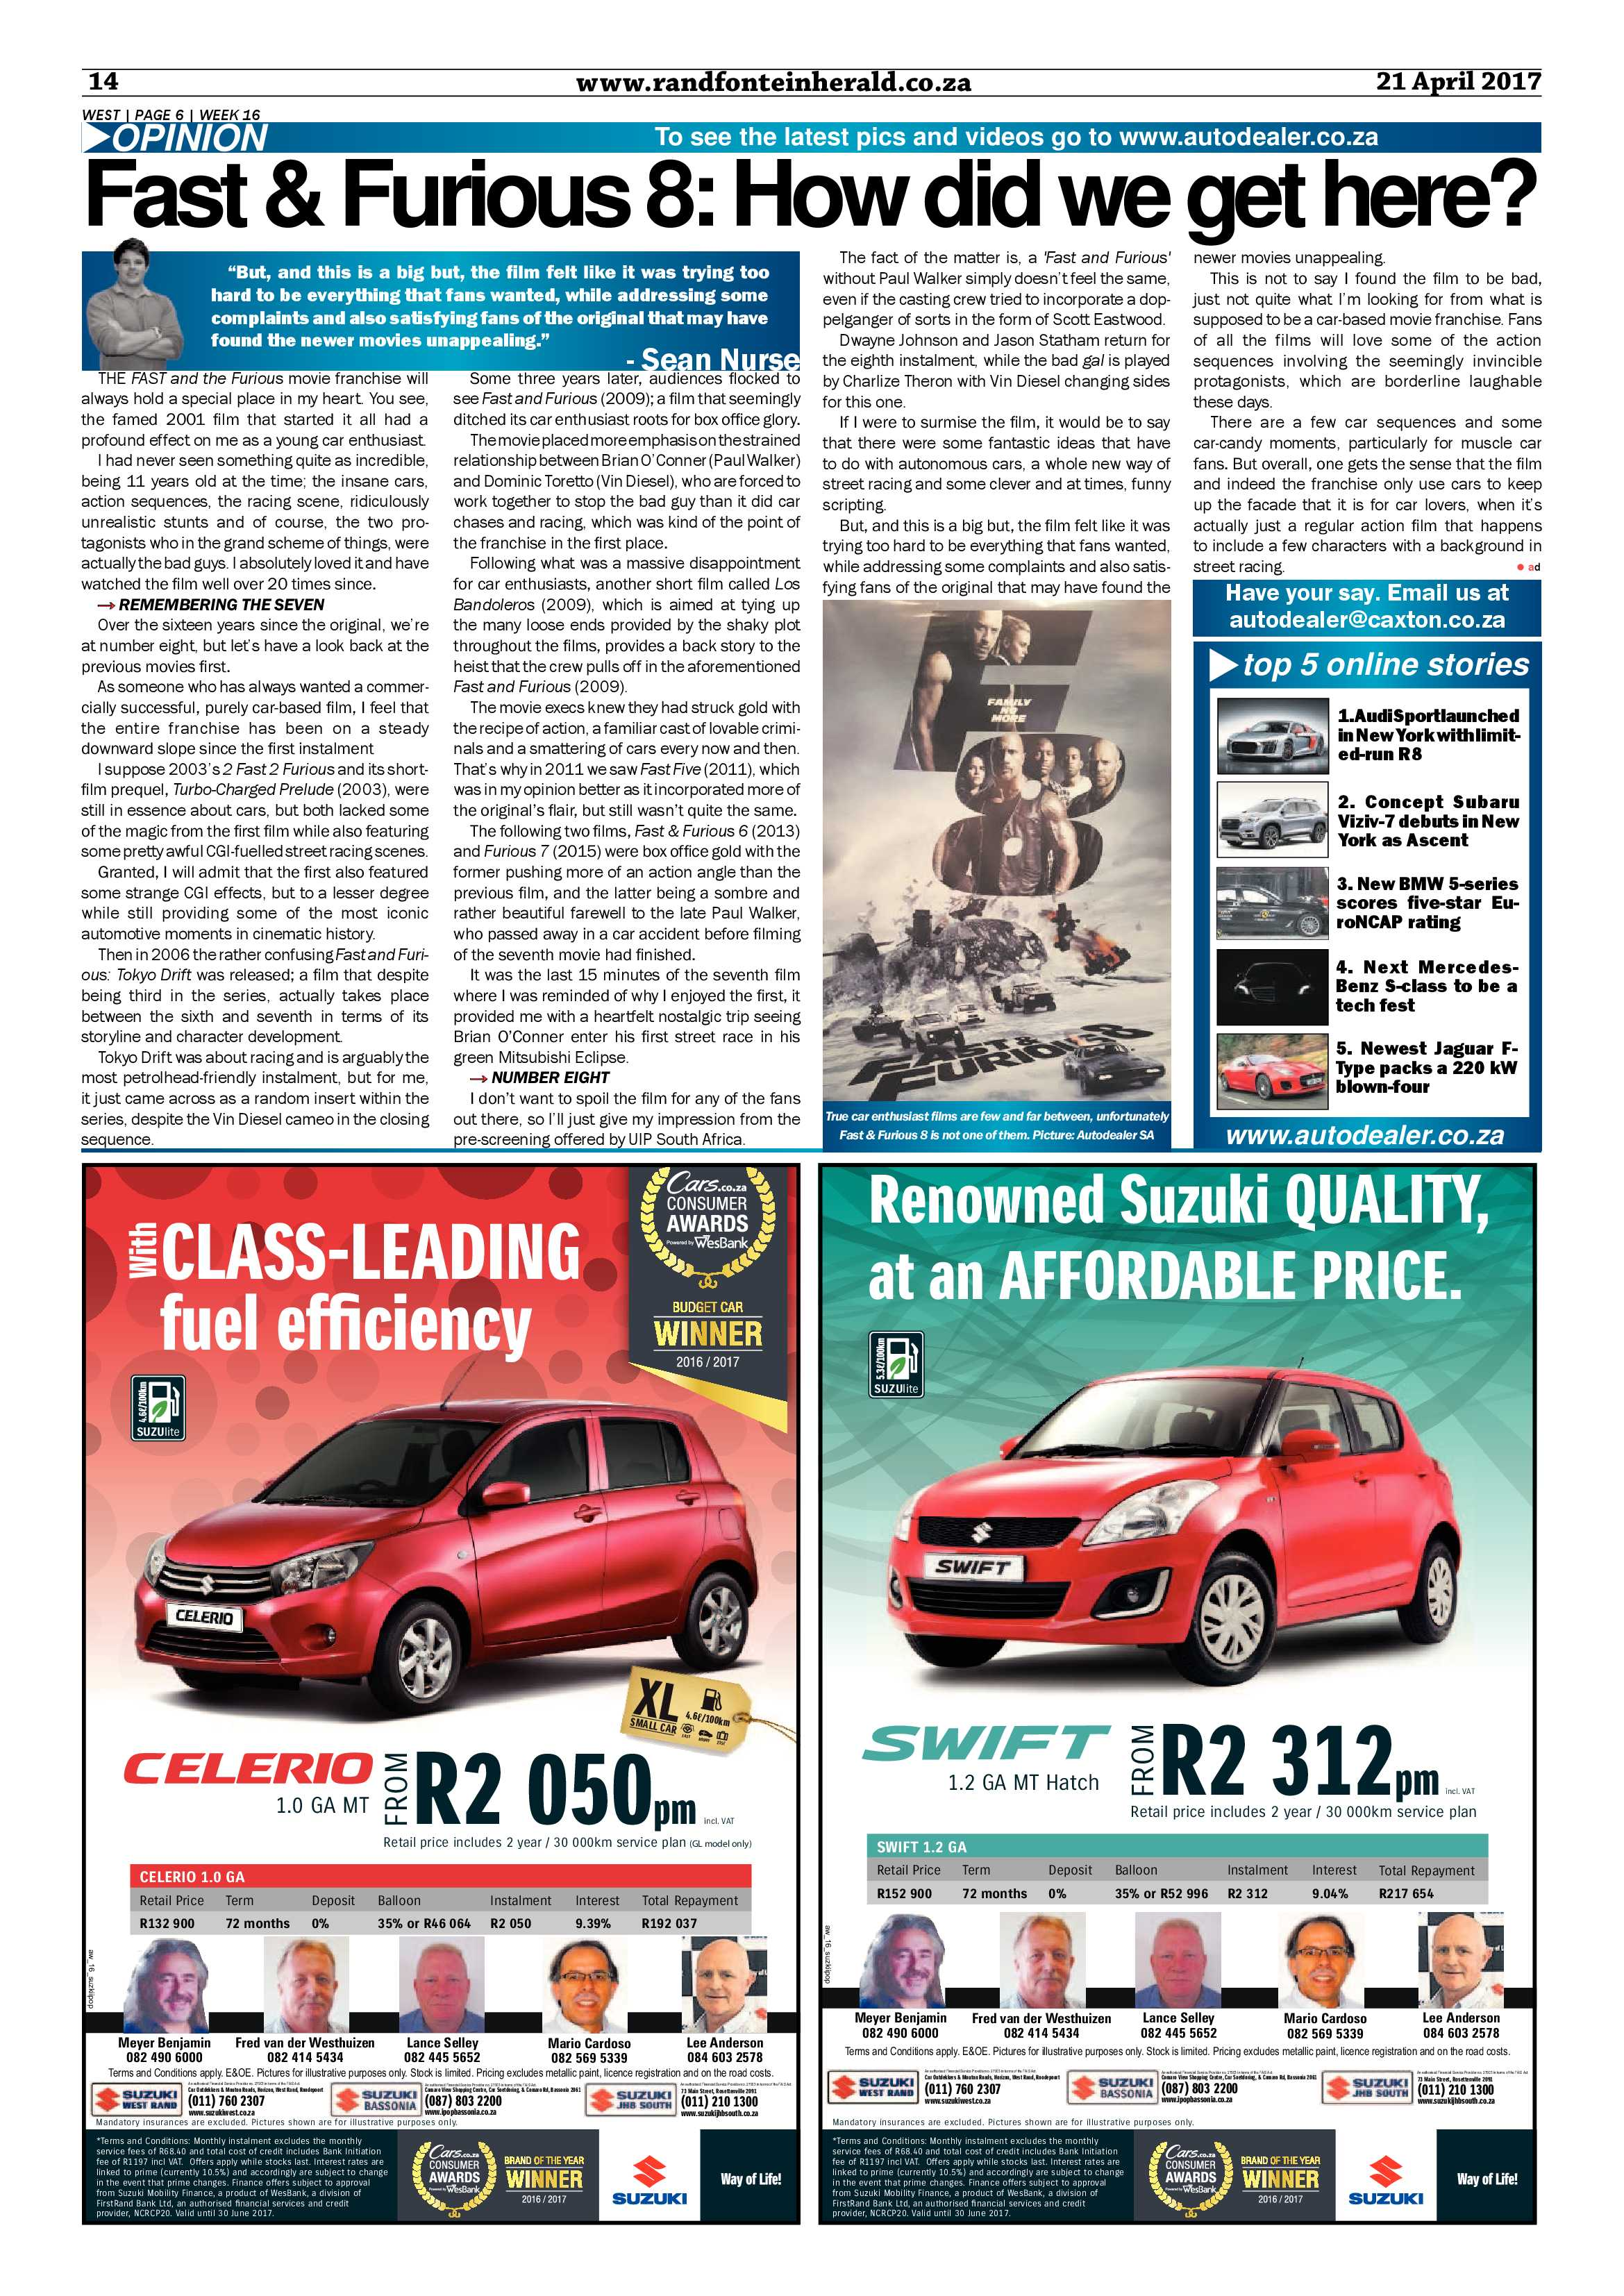 randfontein-herald-21-april-2017-epapers-page-14